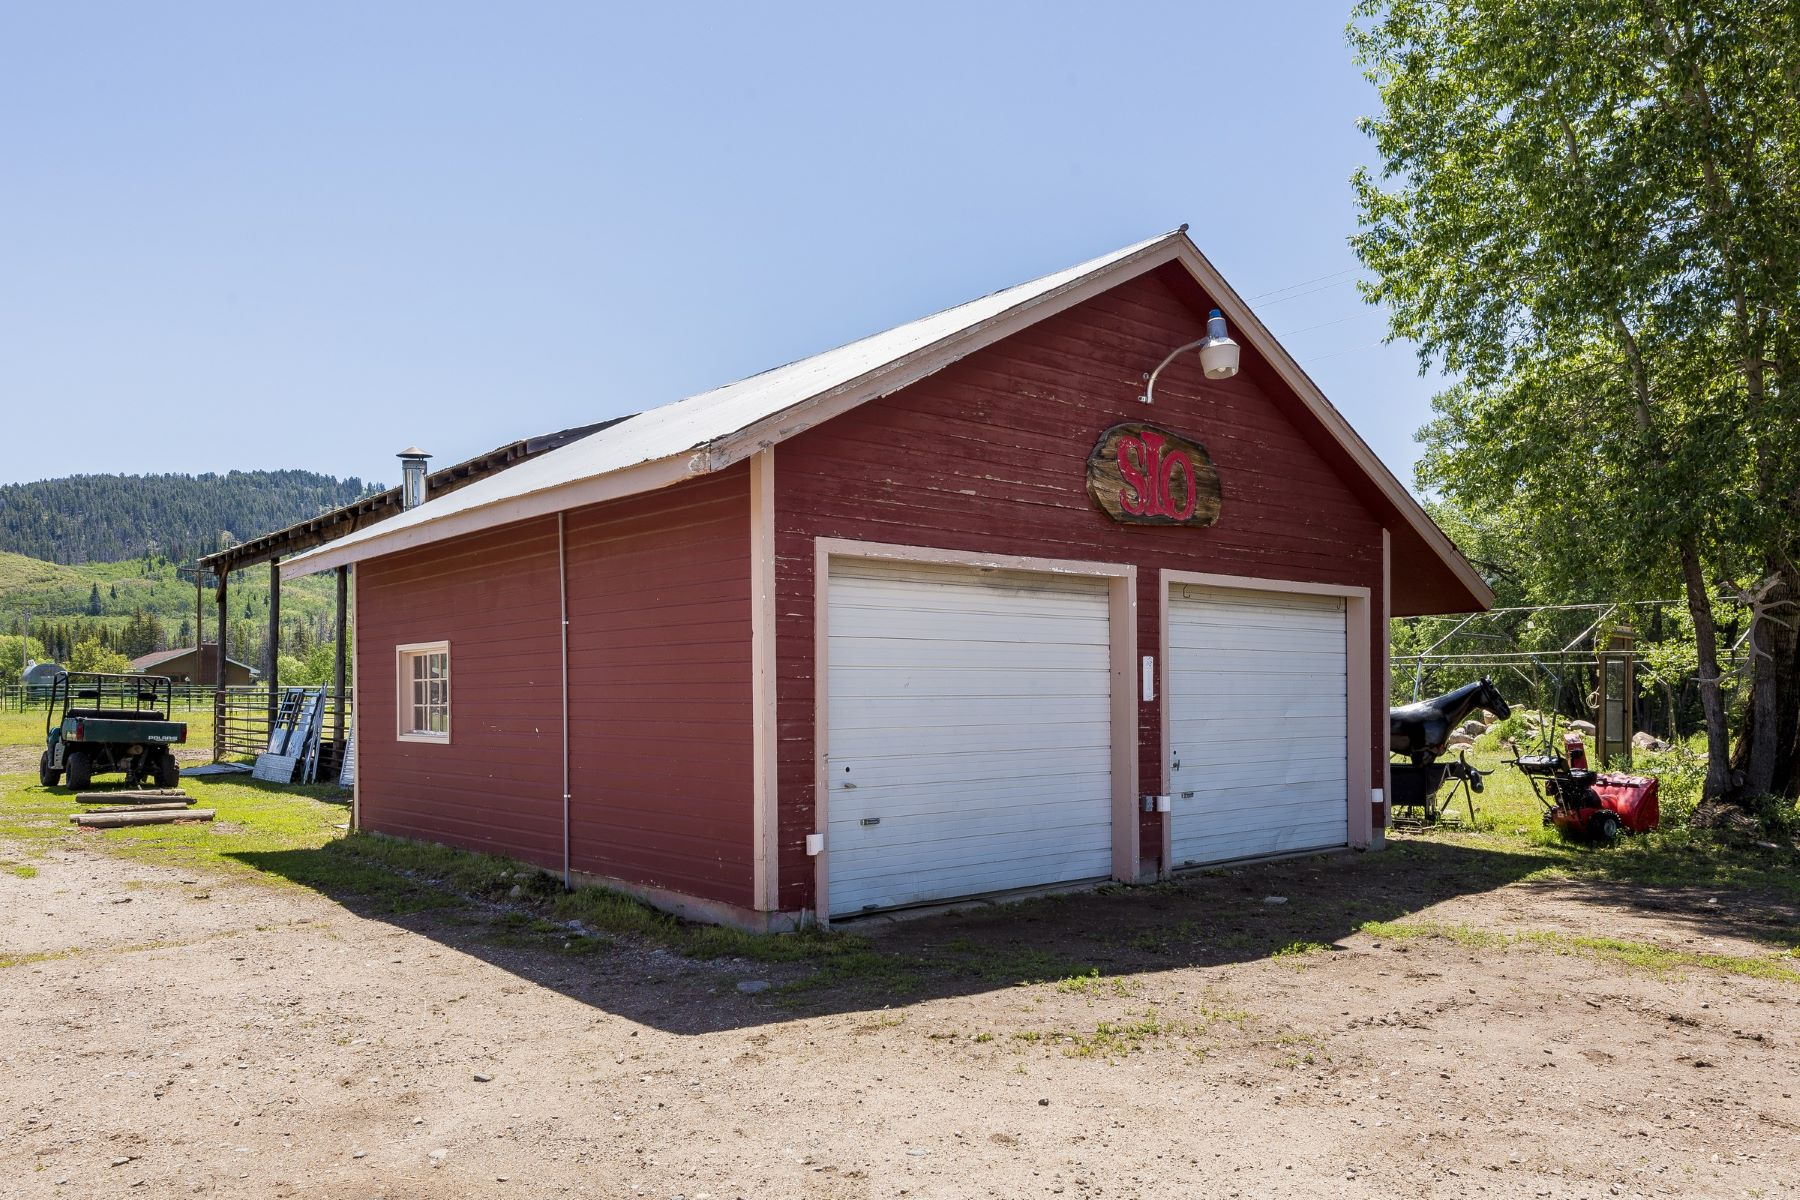 Additional photo for property listing at Prime Horse Property 27400 RCR 64 Clark, Colorado 80428 United States